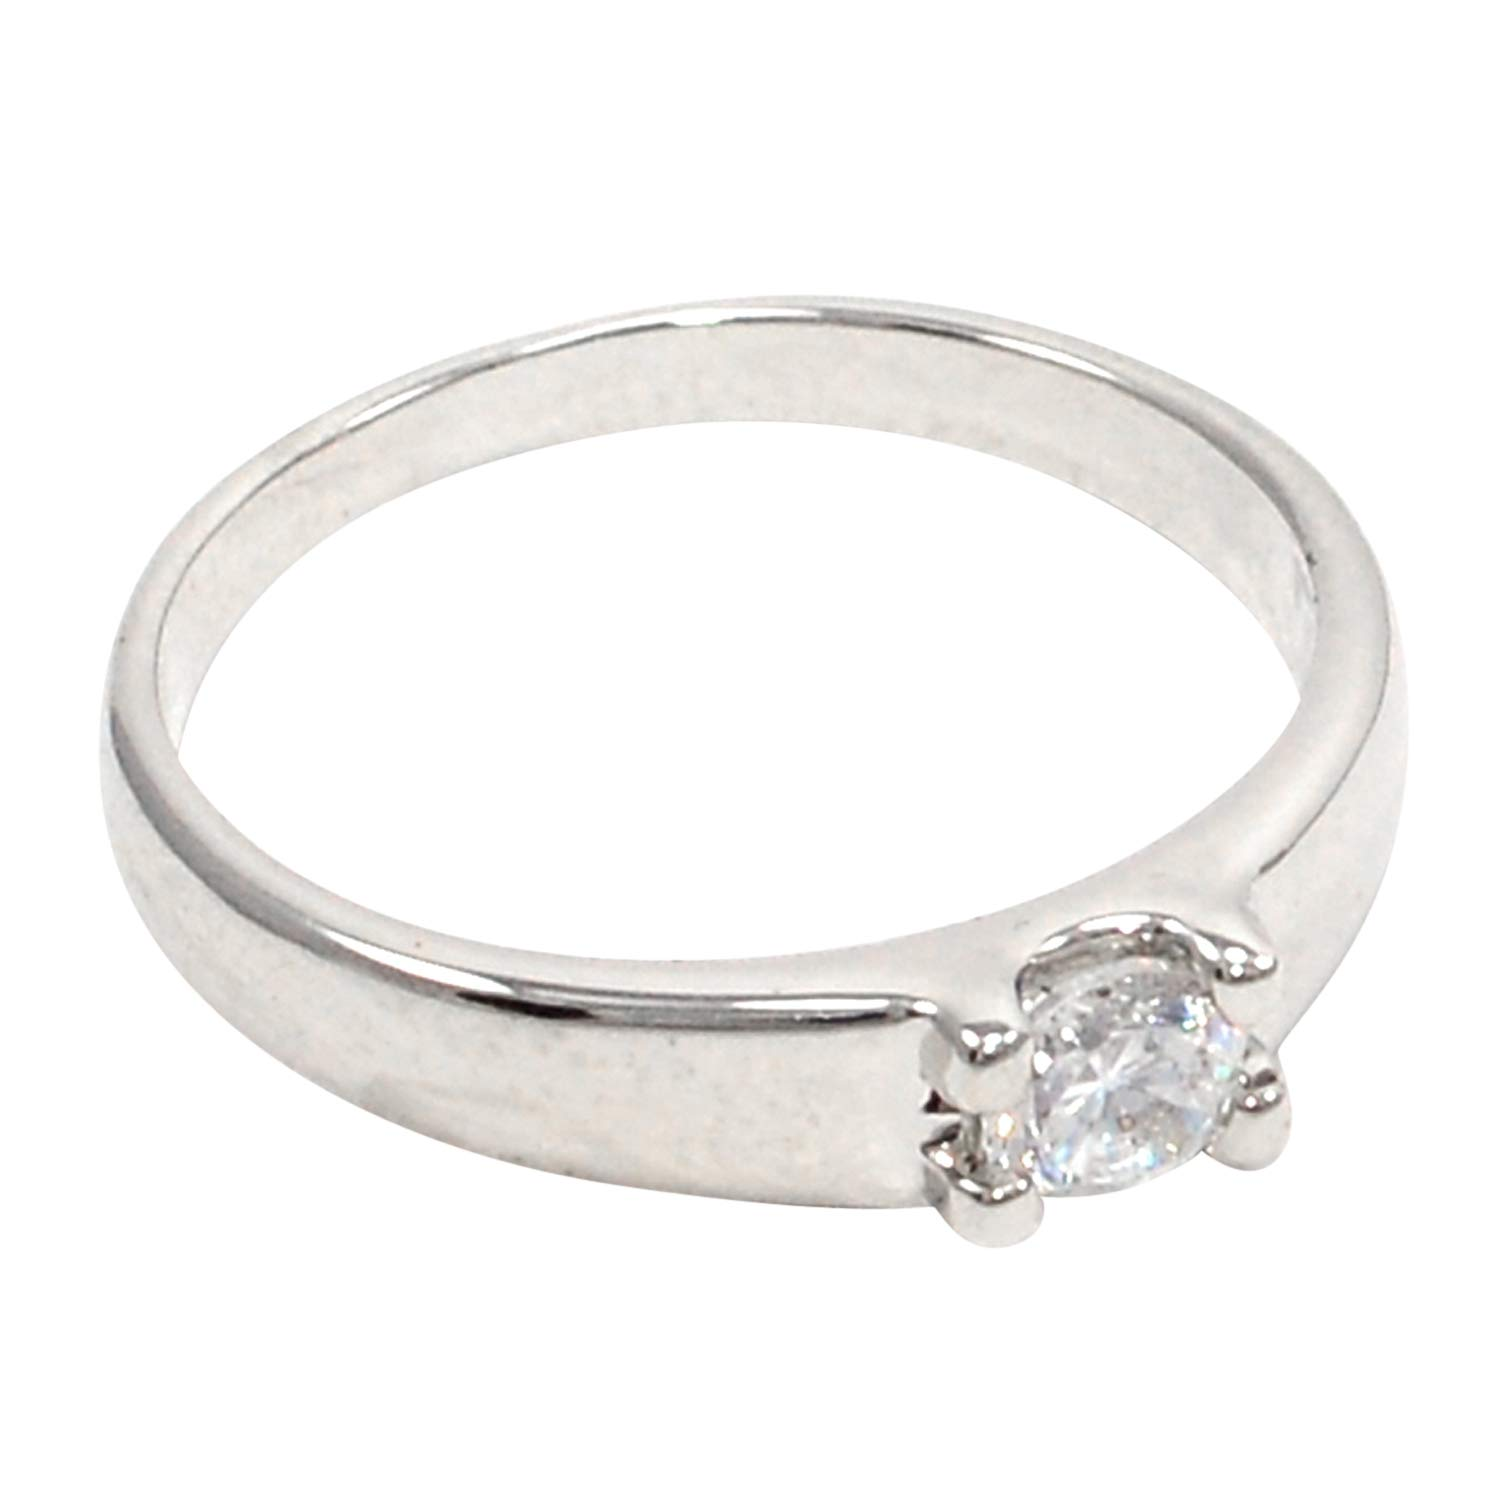 Saamarth Impex Cubic Zircon 925 Silver Plated Ring Sz 9 PG-108155